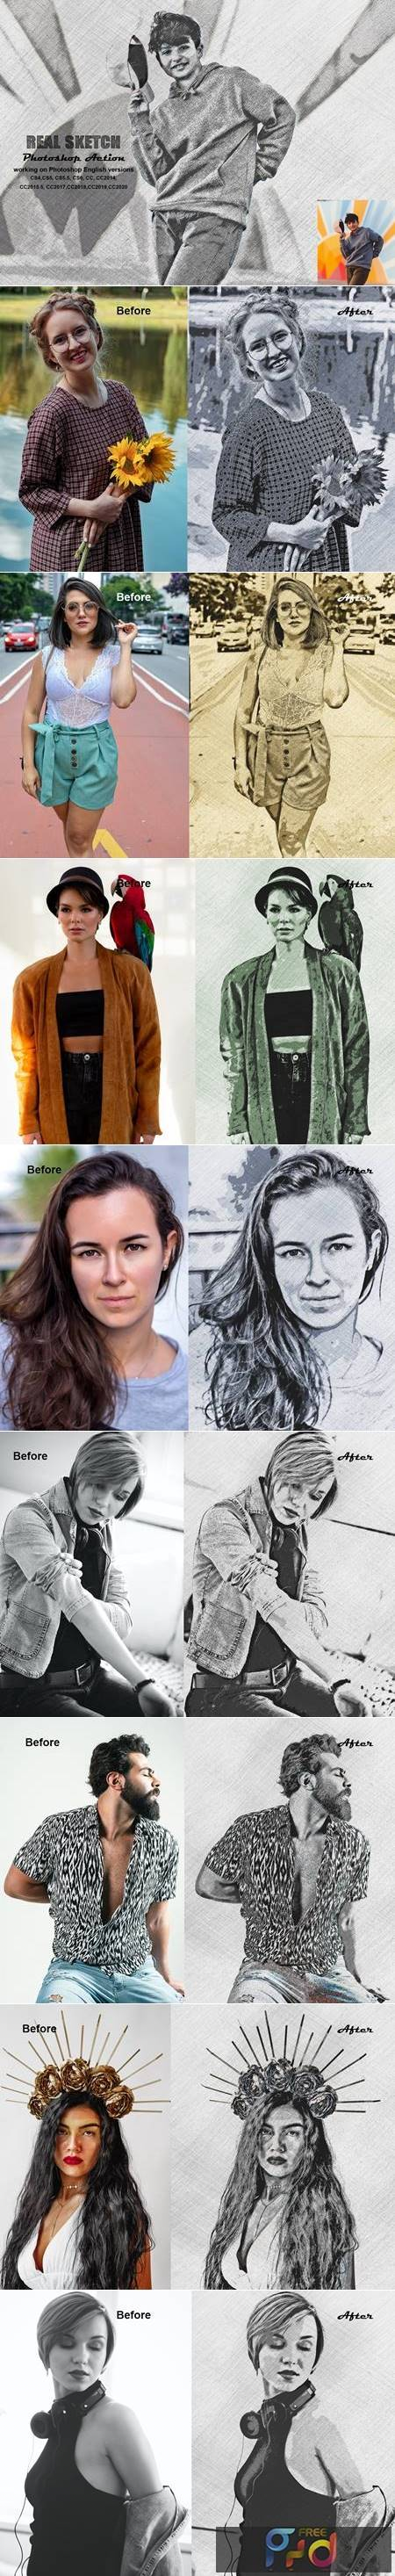 Real Sketch Photoshop Action 5493808 1